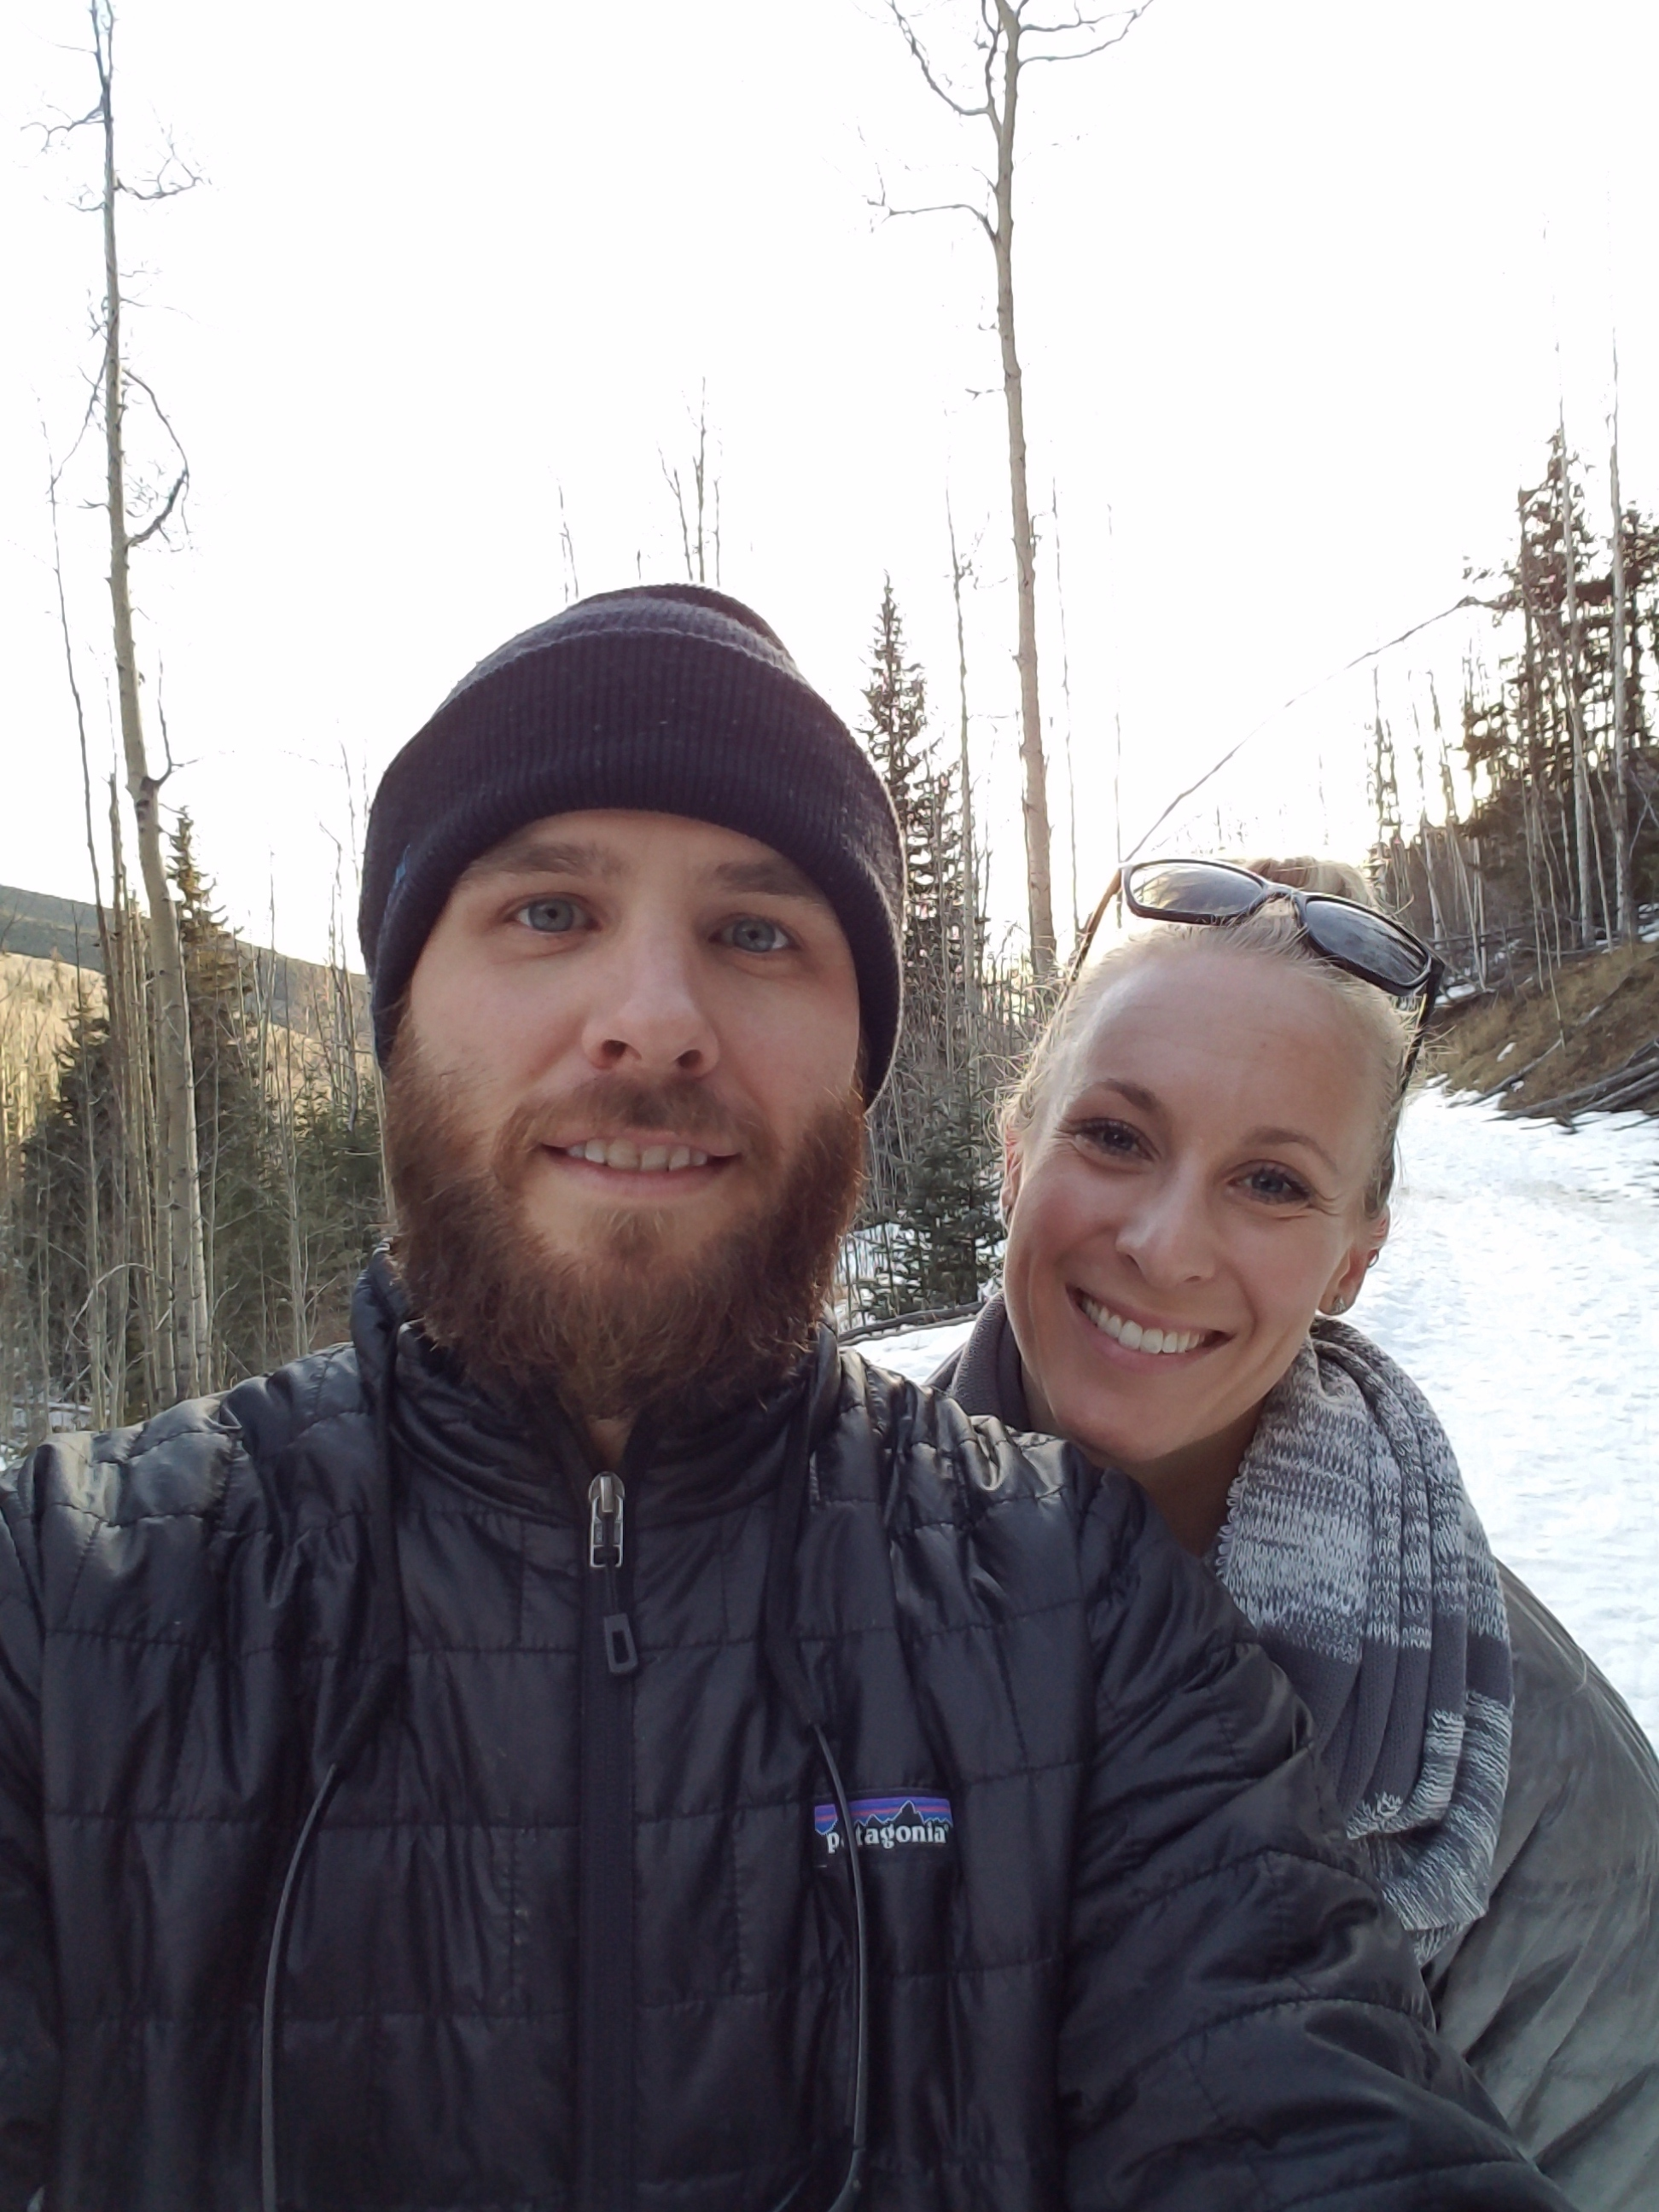 Out on a winter hike with my beautiful wife!